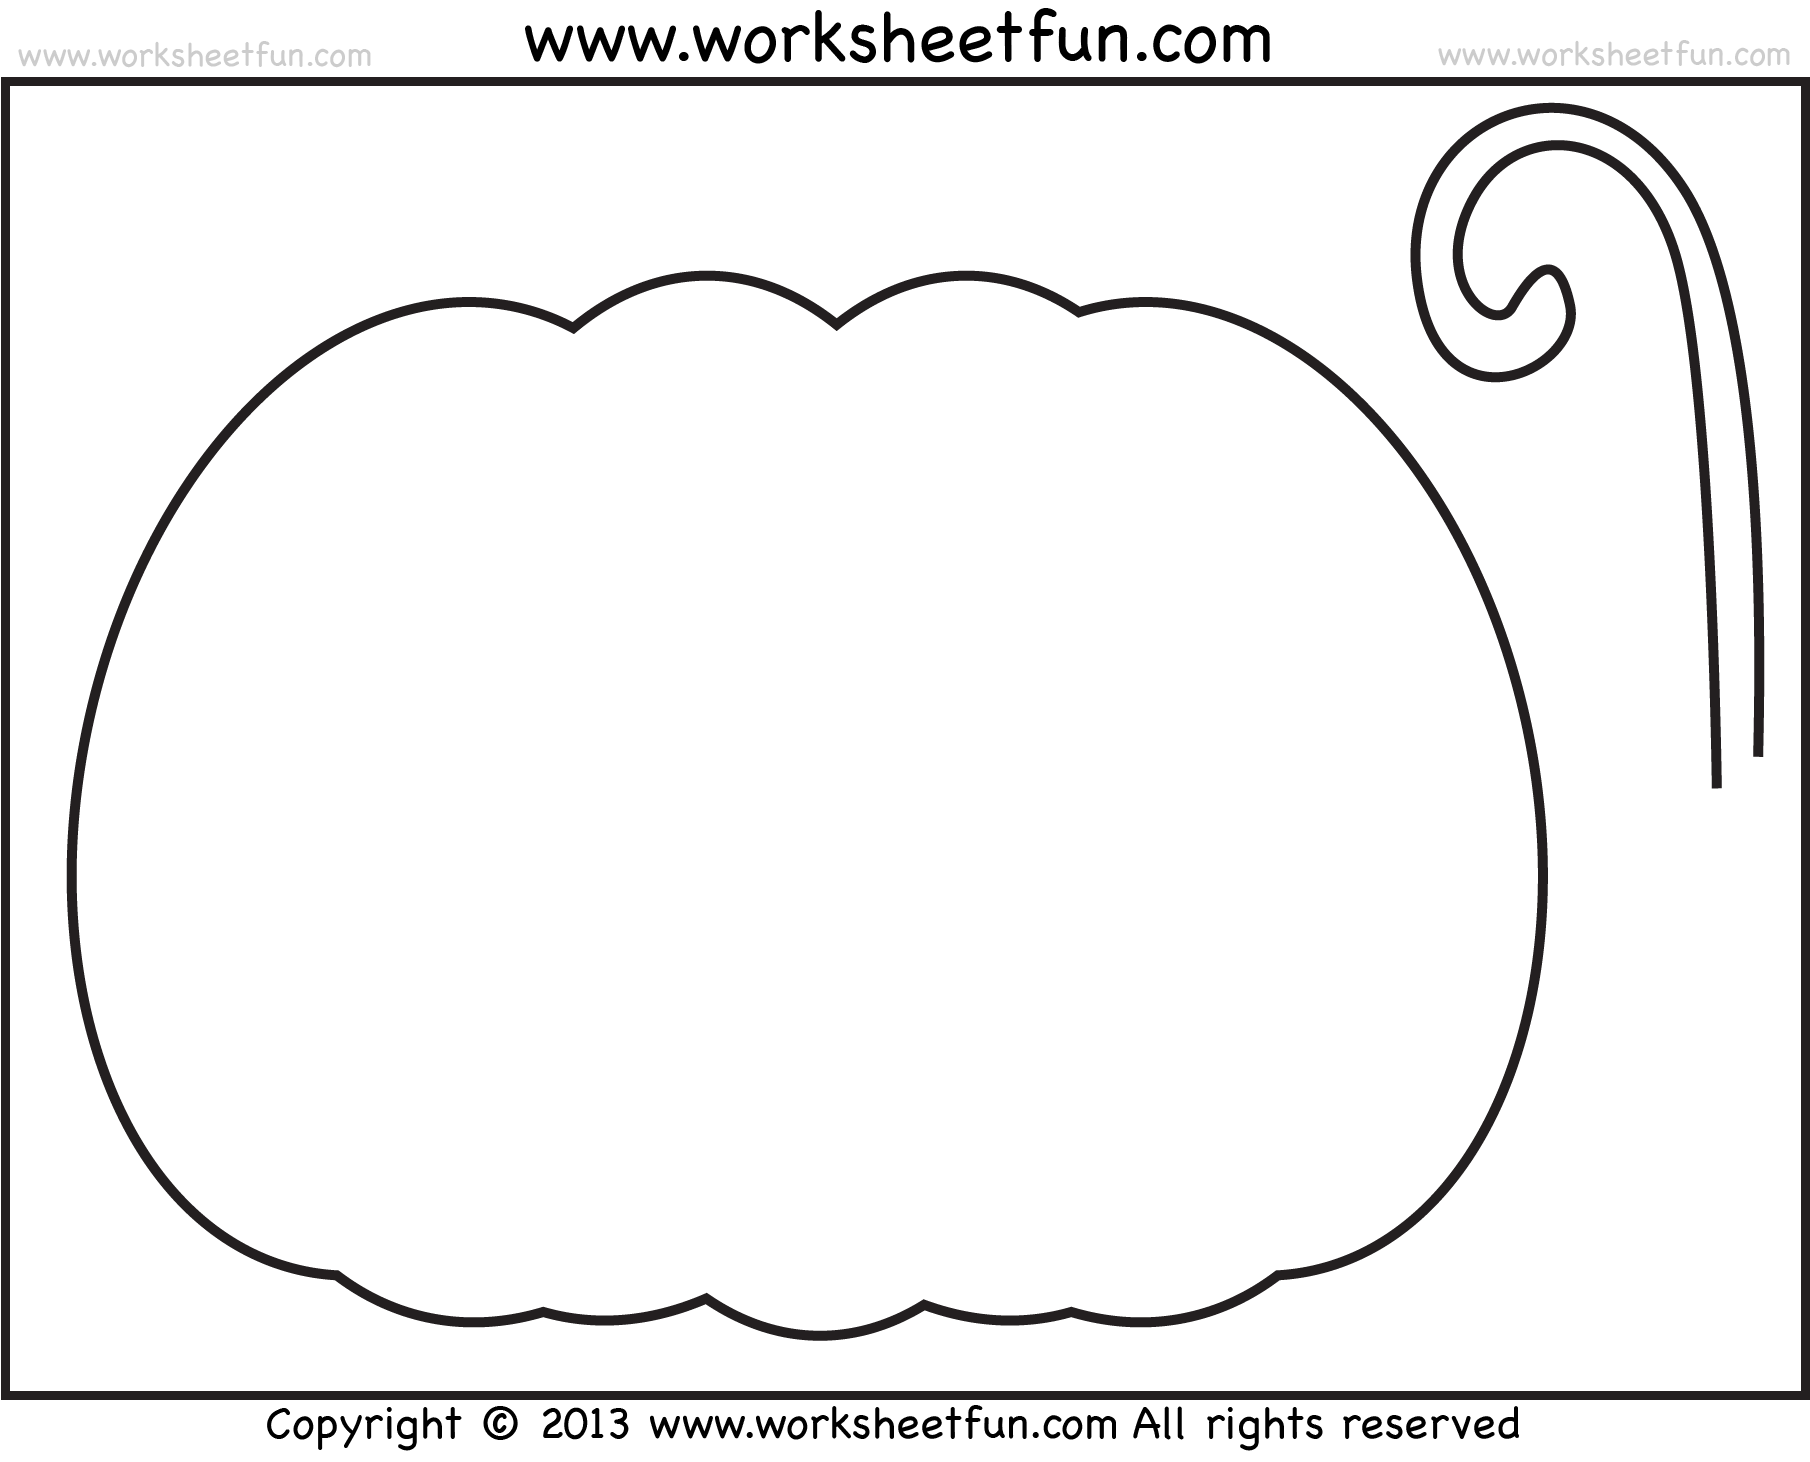 Halloween Printable Stencils For Pumpkin 2 Worksheets